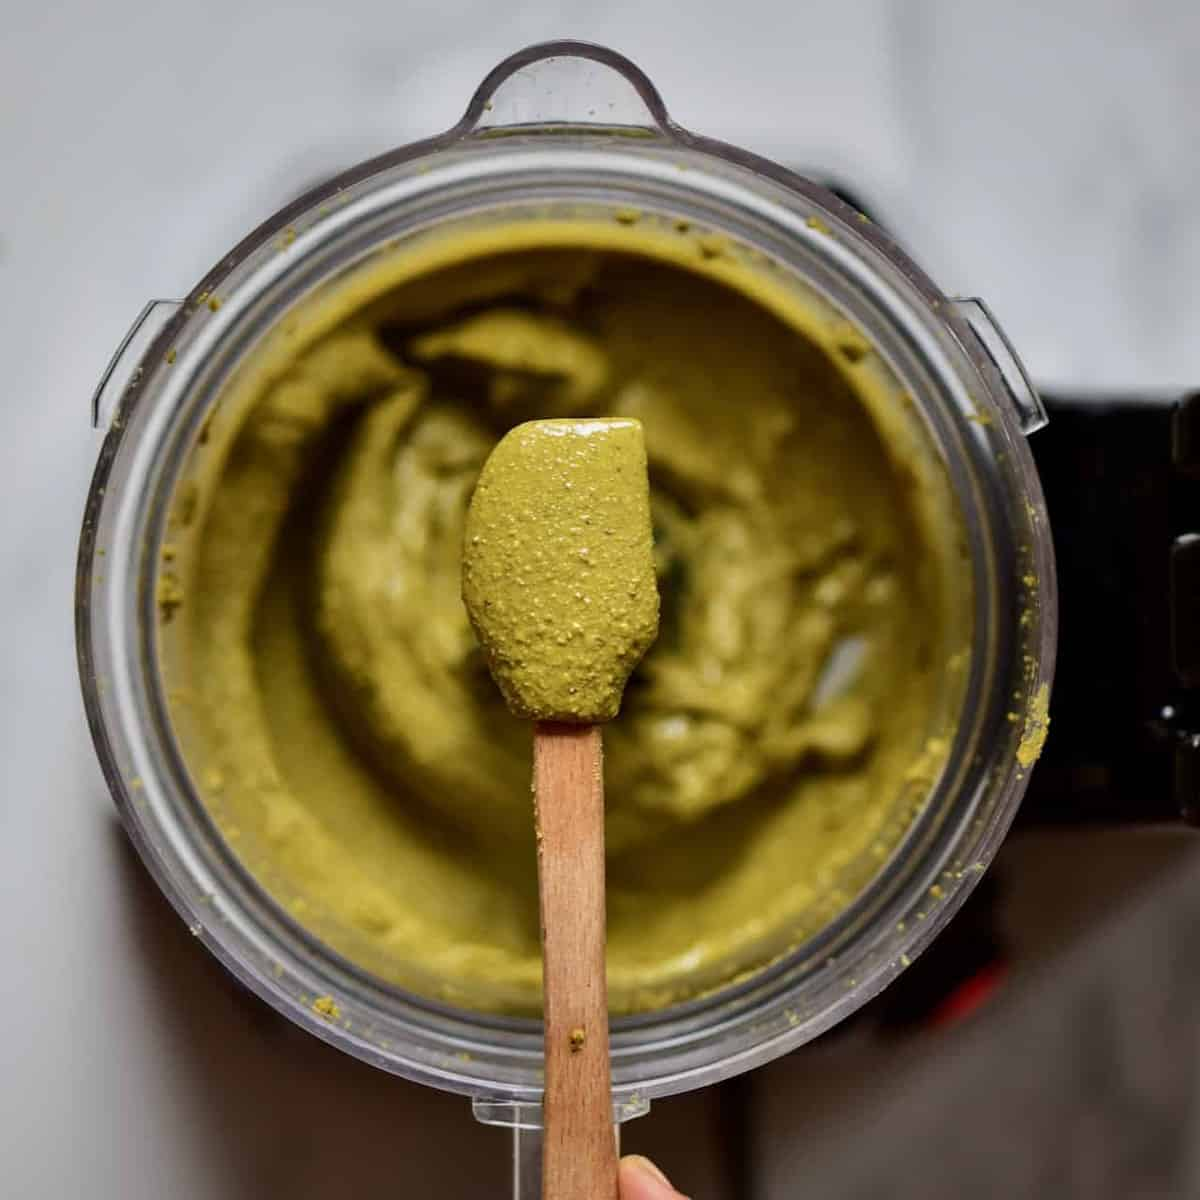 blending up some homemade pistachio butter